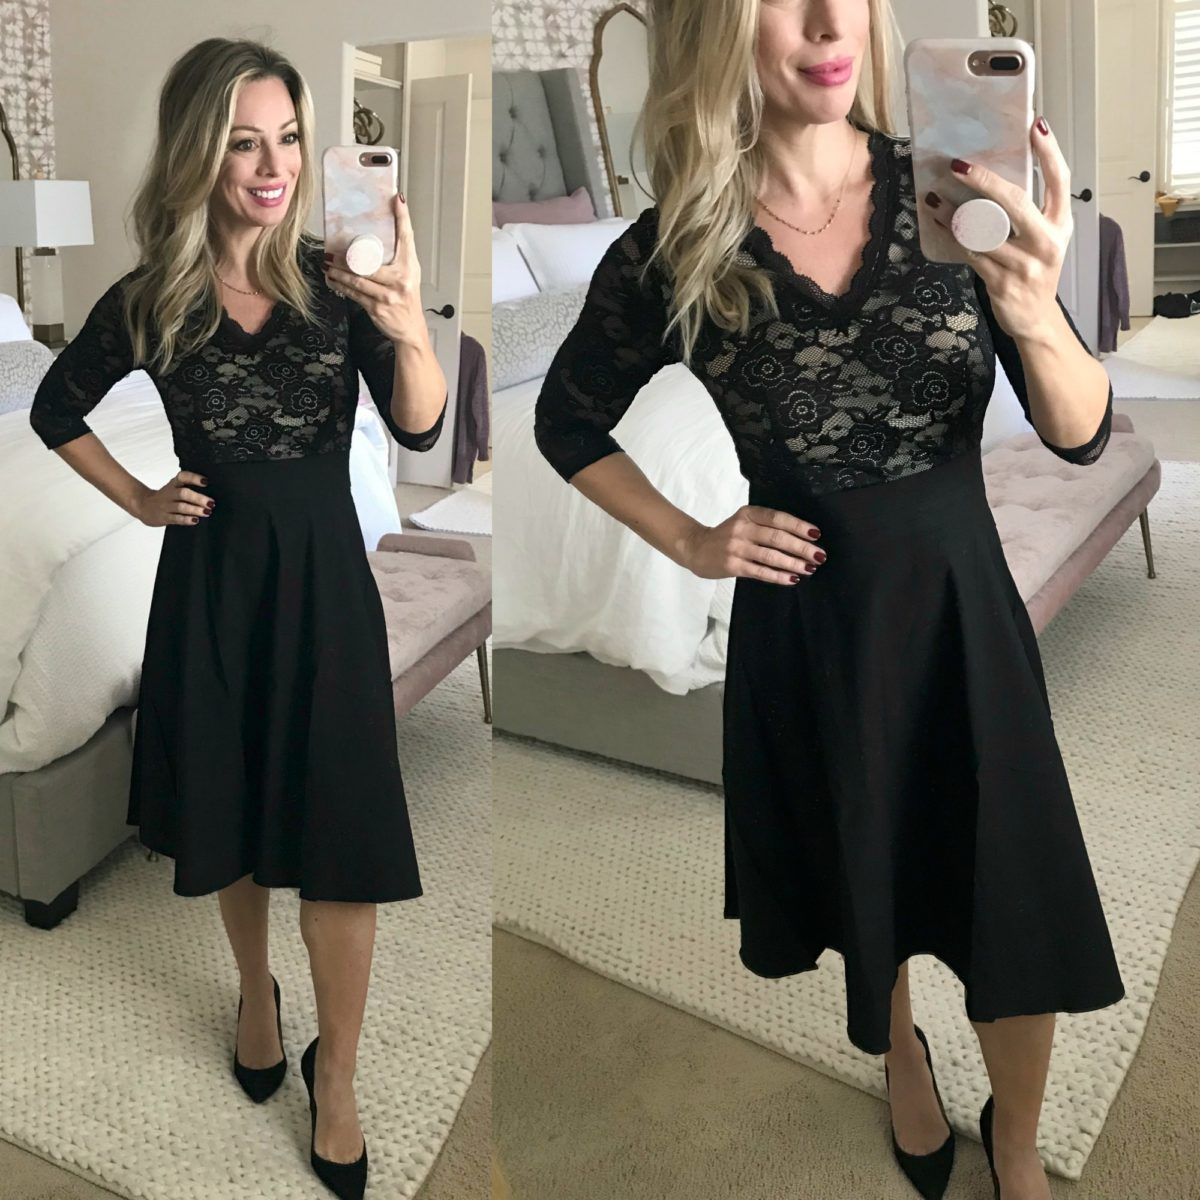 Amazon Fashion Haul - black lace dress